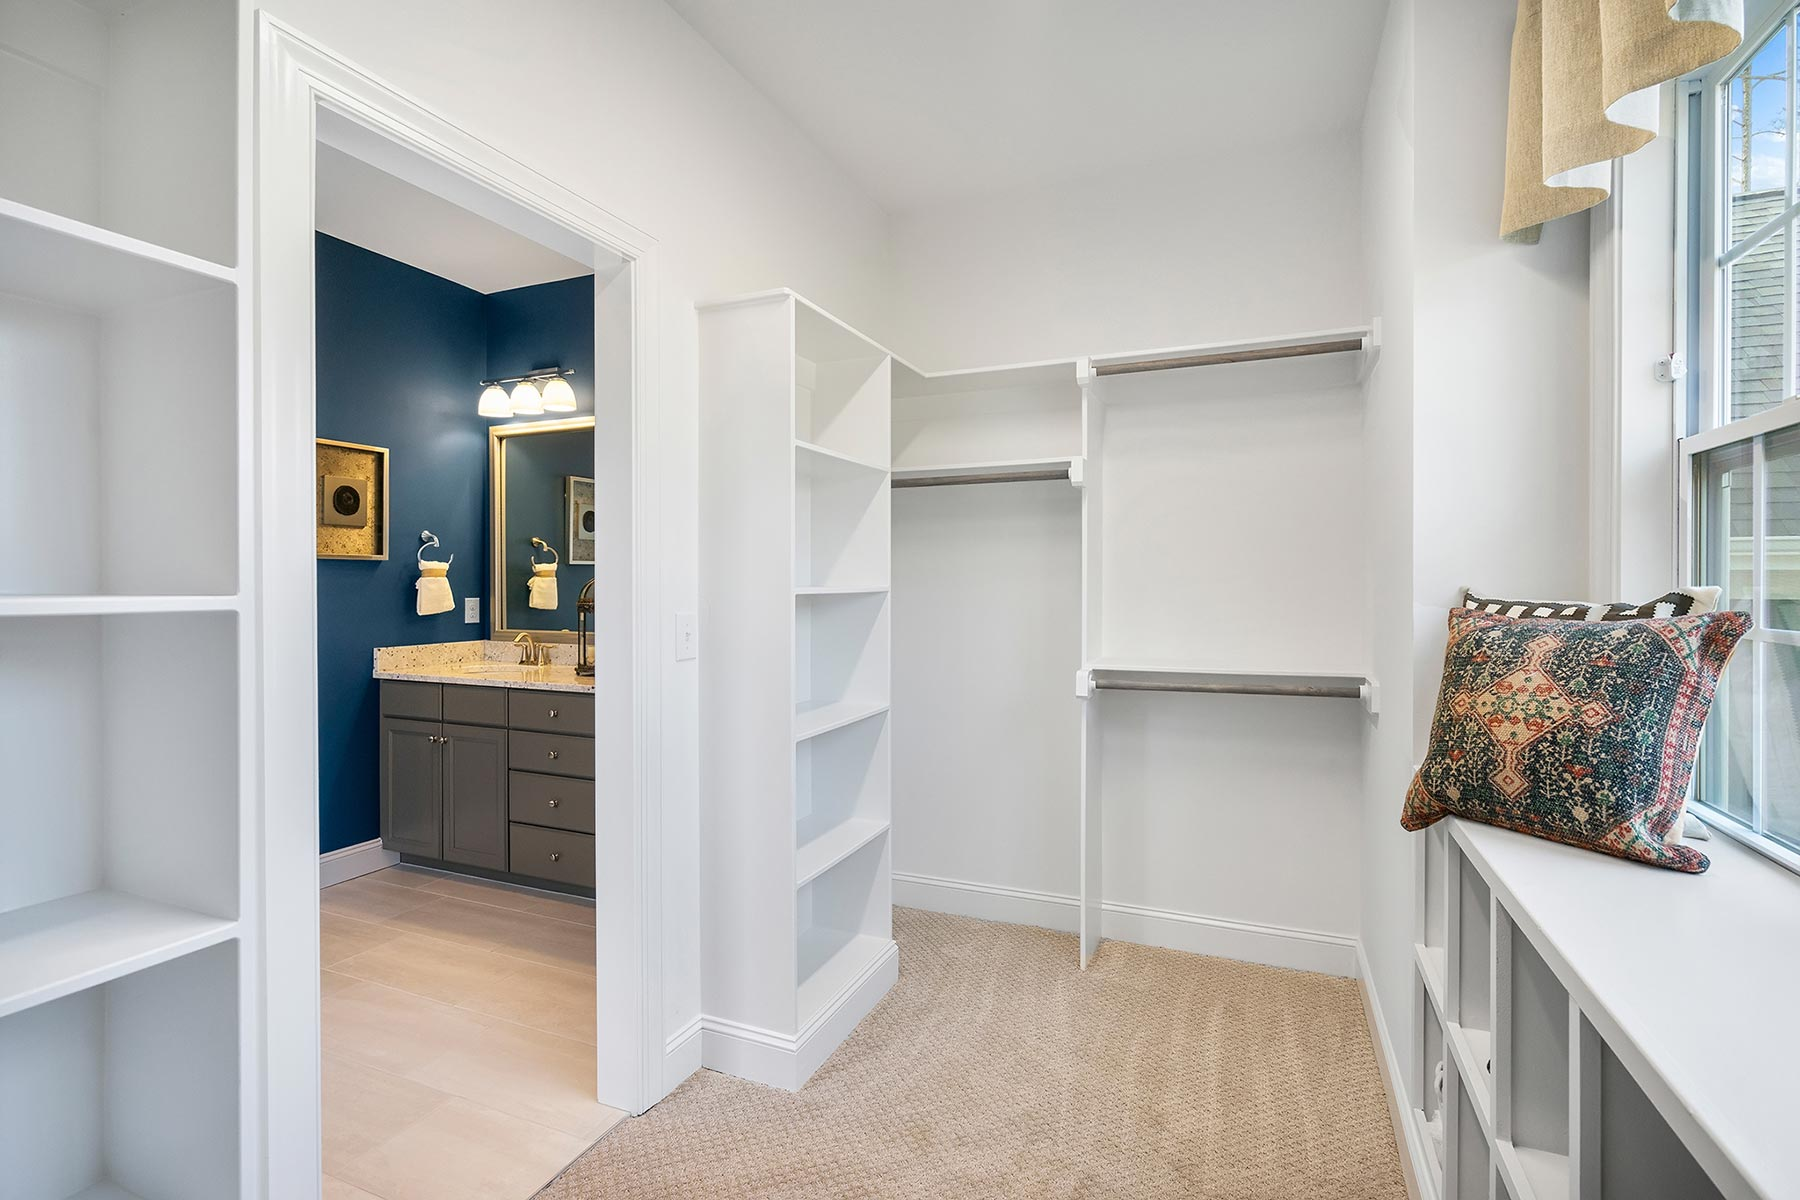 Edenton Plan Closet at Ballentine Place in Holly Springs North Carolina by Mattamy Homes